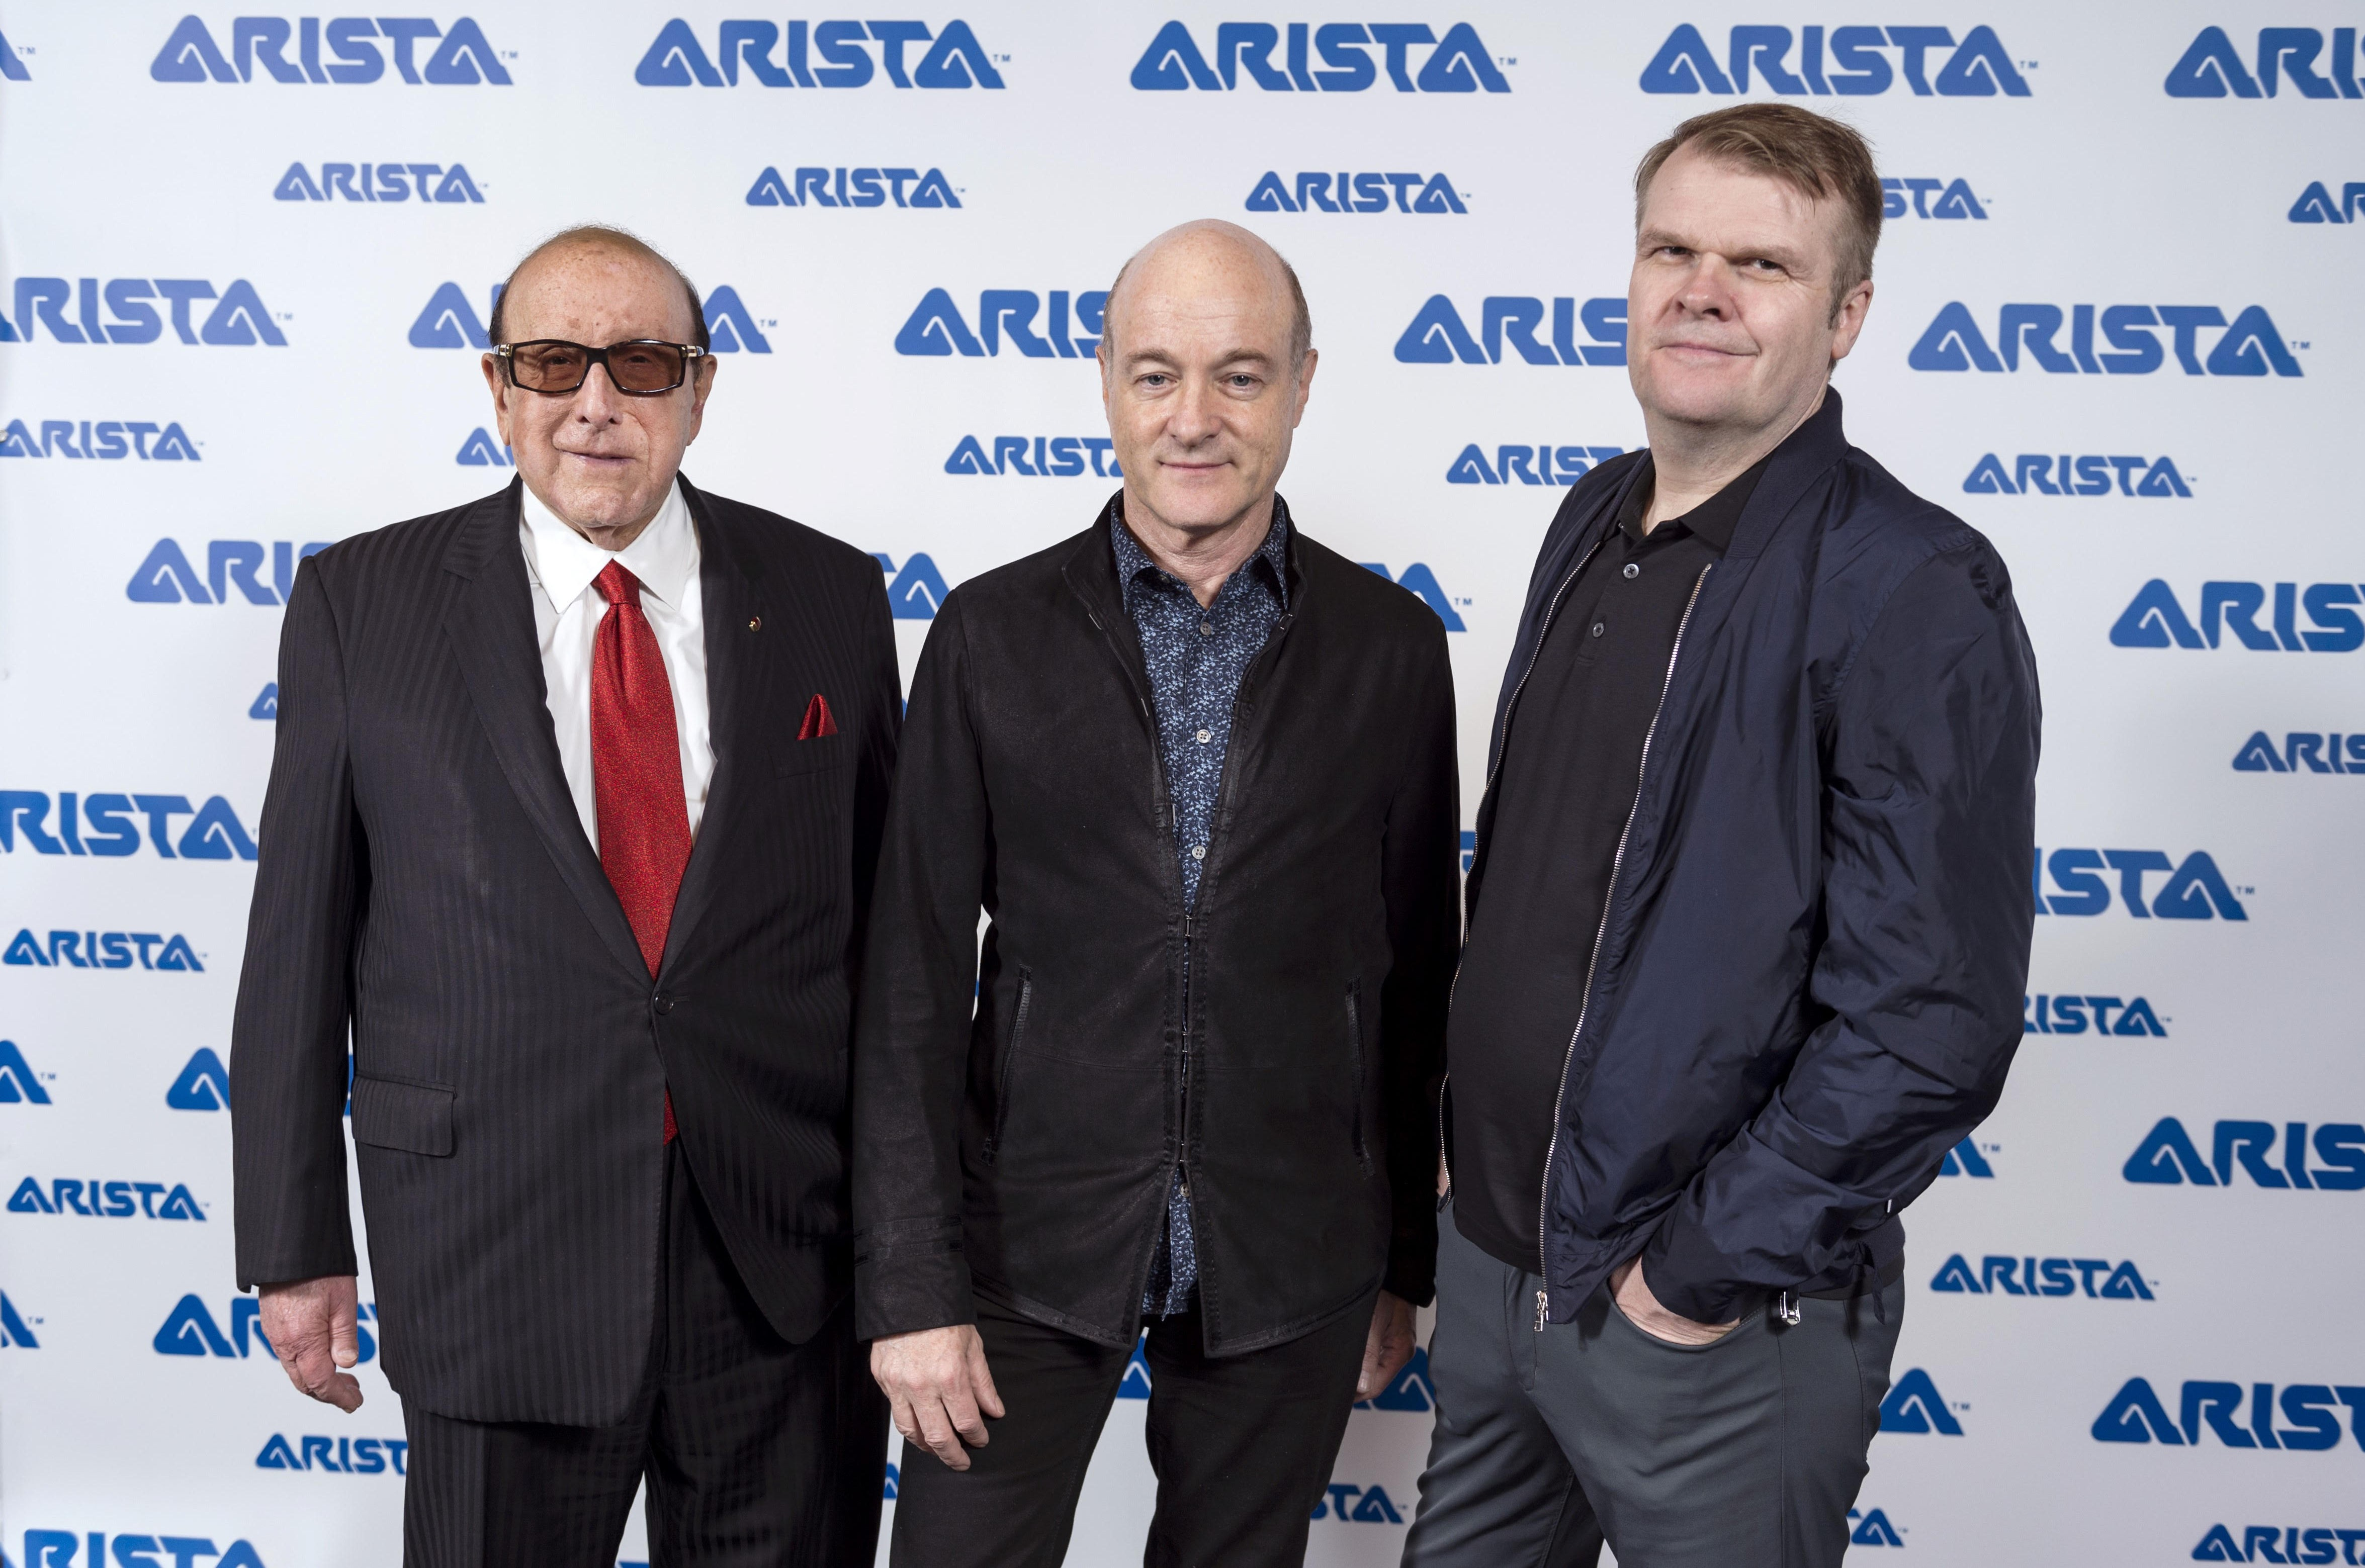 Clive Davis, David Massey and Rob Stringer